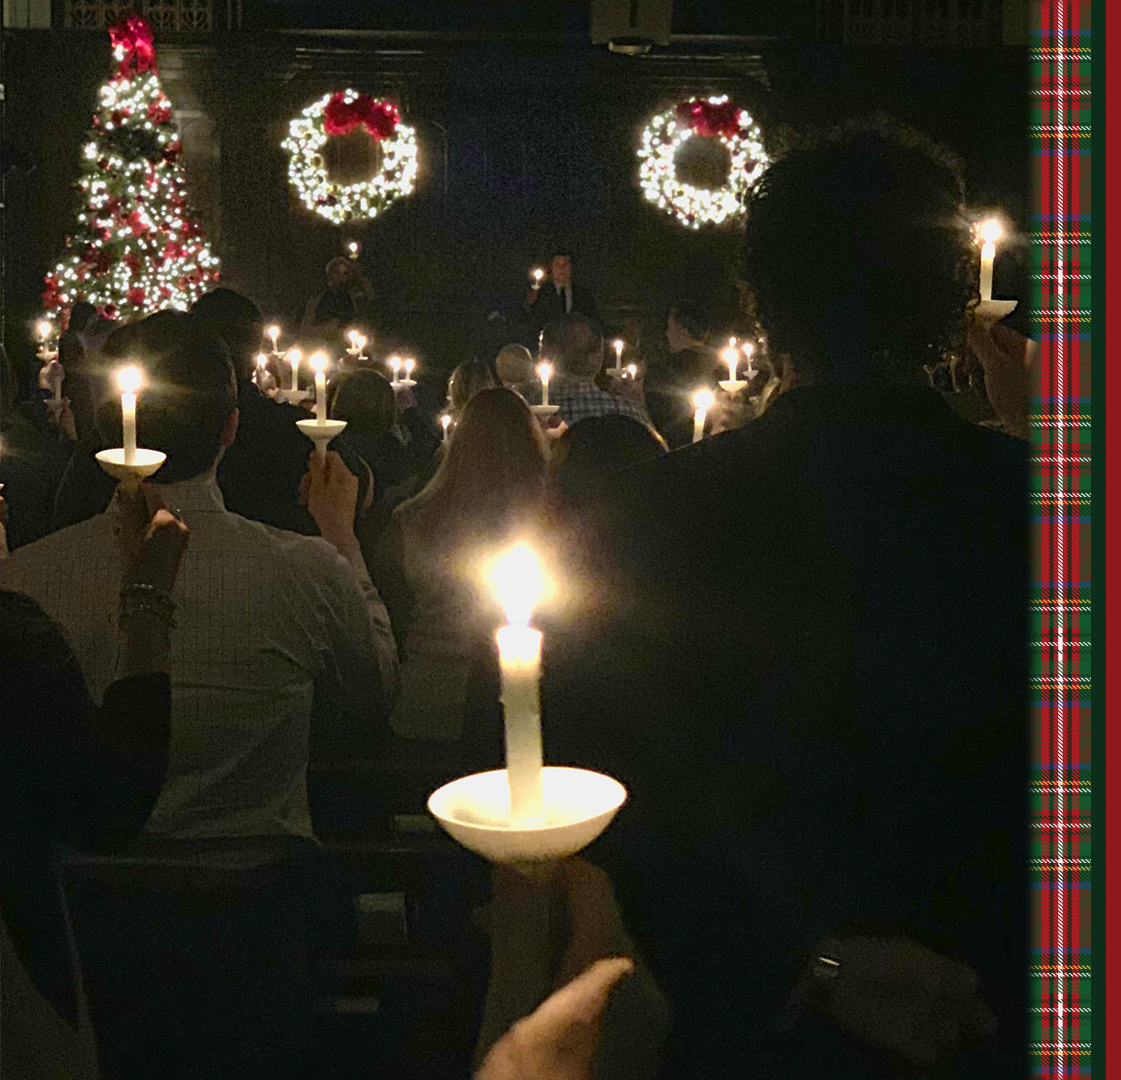 Candlelight Xmas Eve Plaid Image